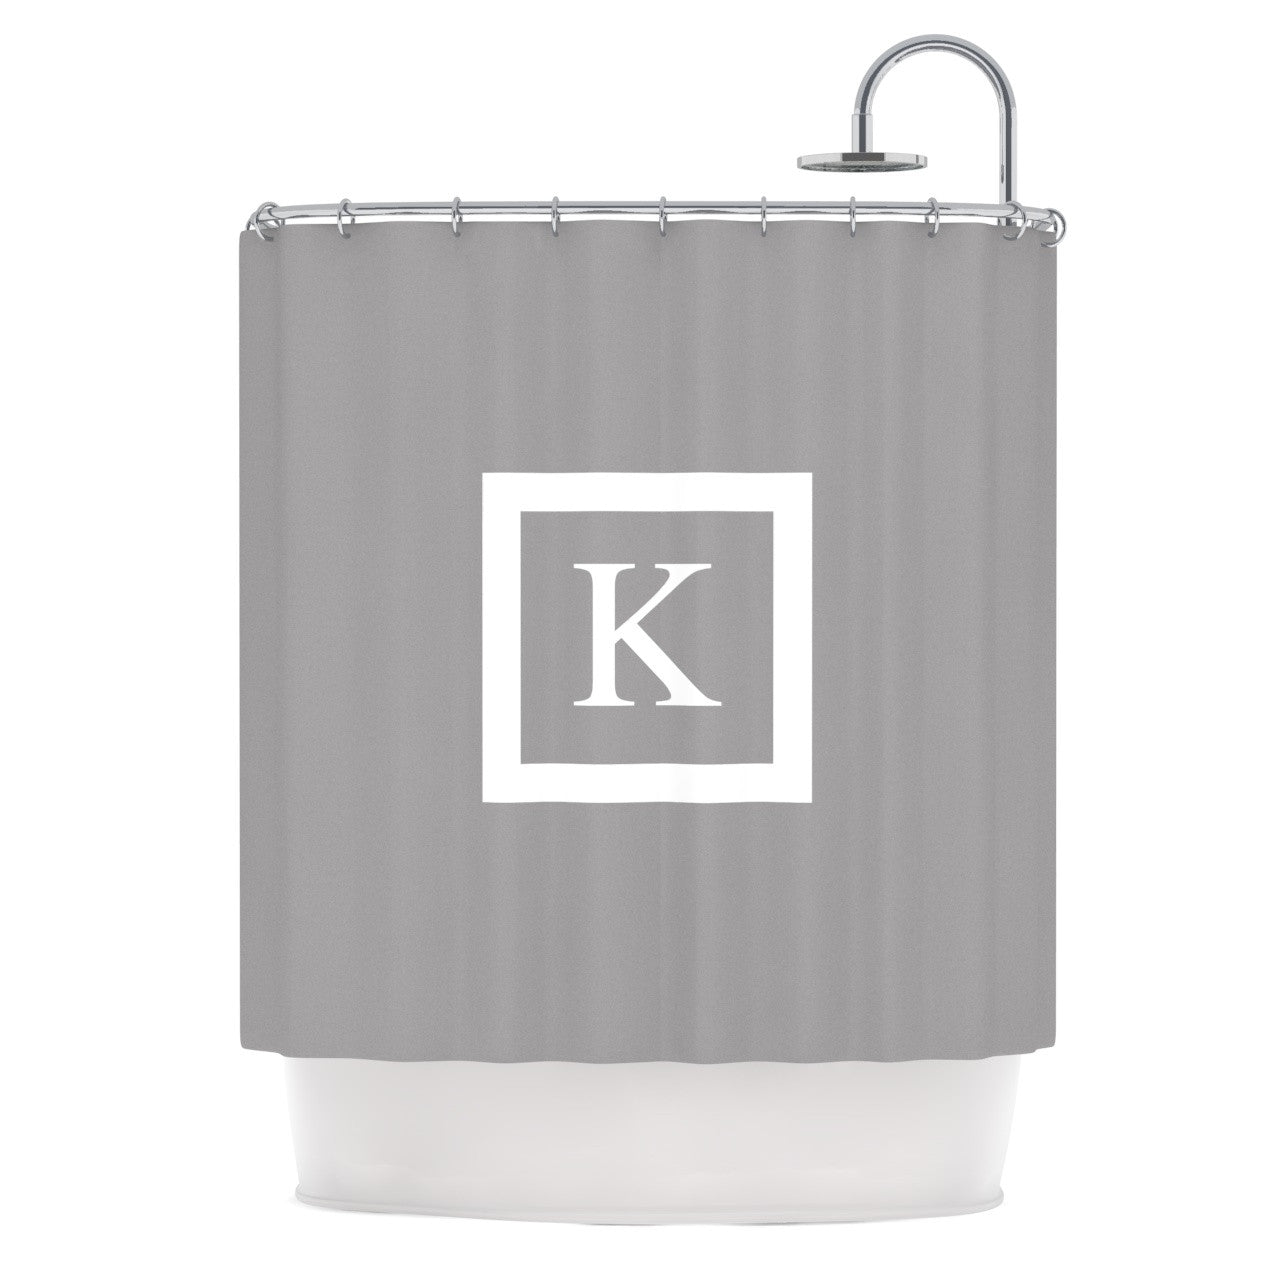 Black and white monogrammed shower curtain - Kess Original Monogram Solid Grey Shower Curtain Kess Inhouse Gray Shower Curtain